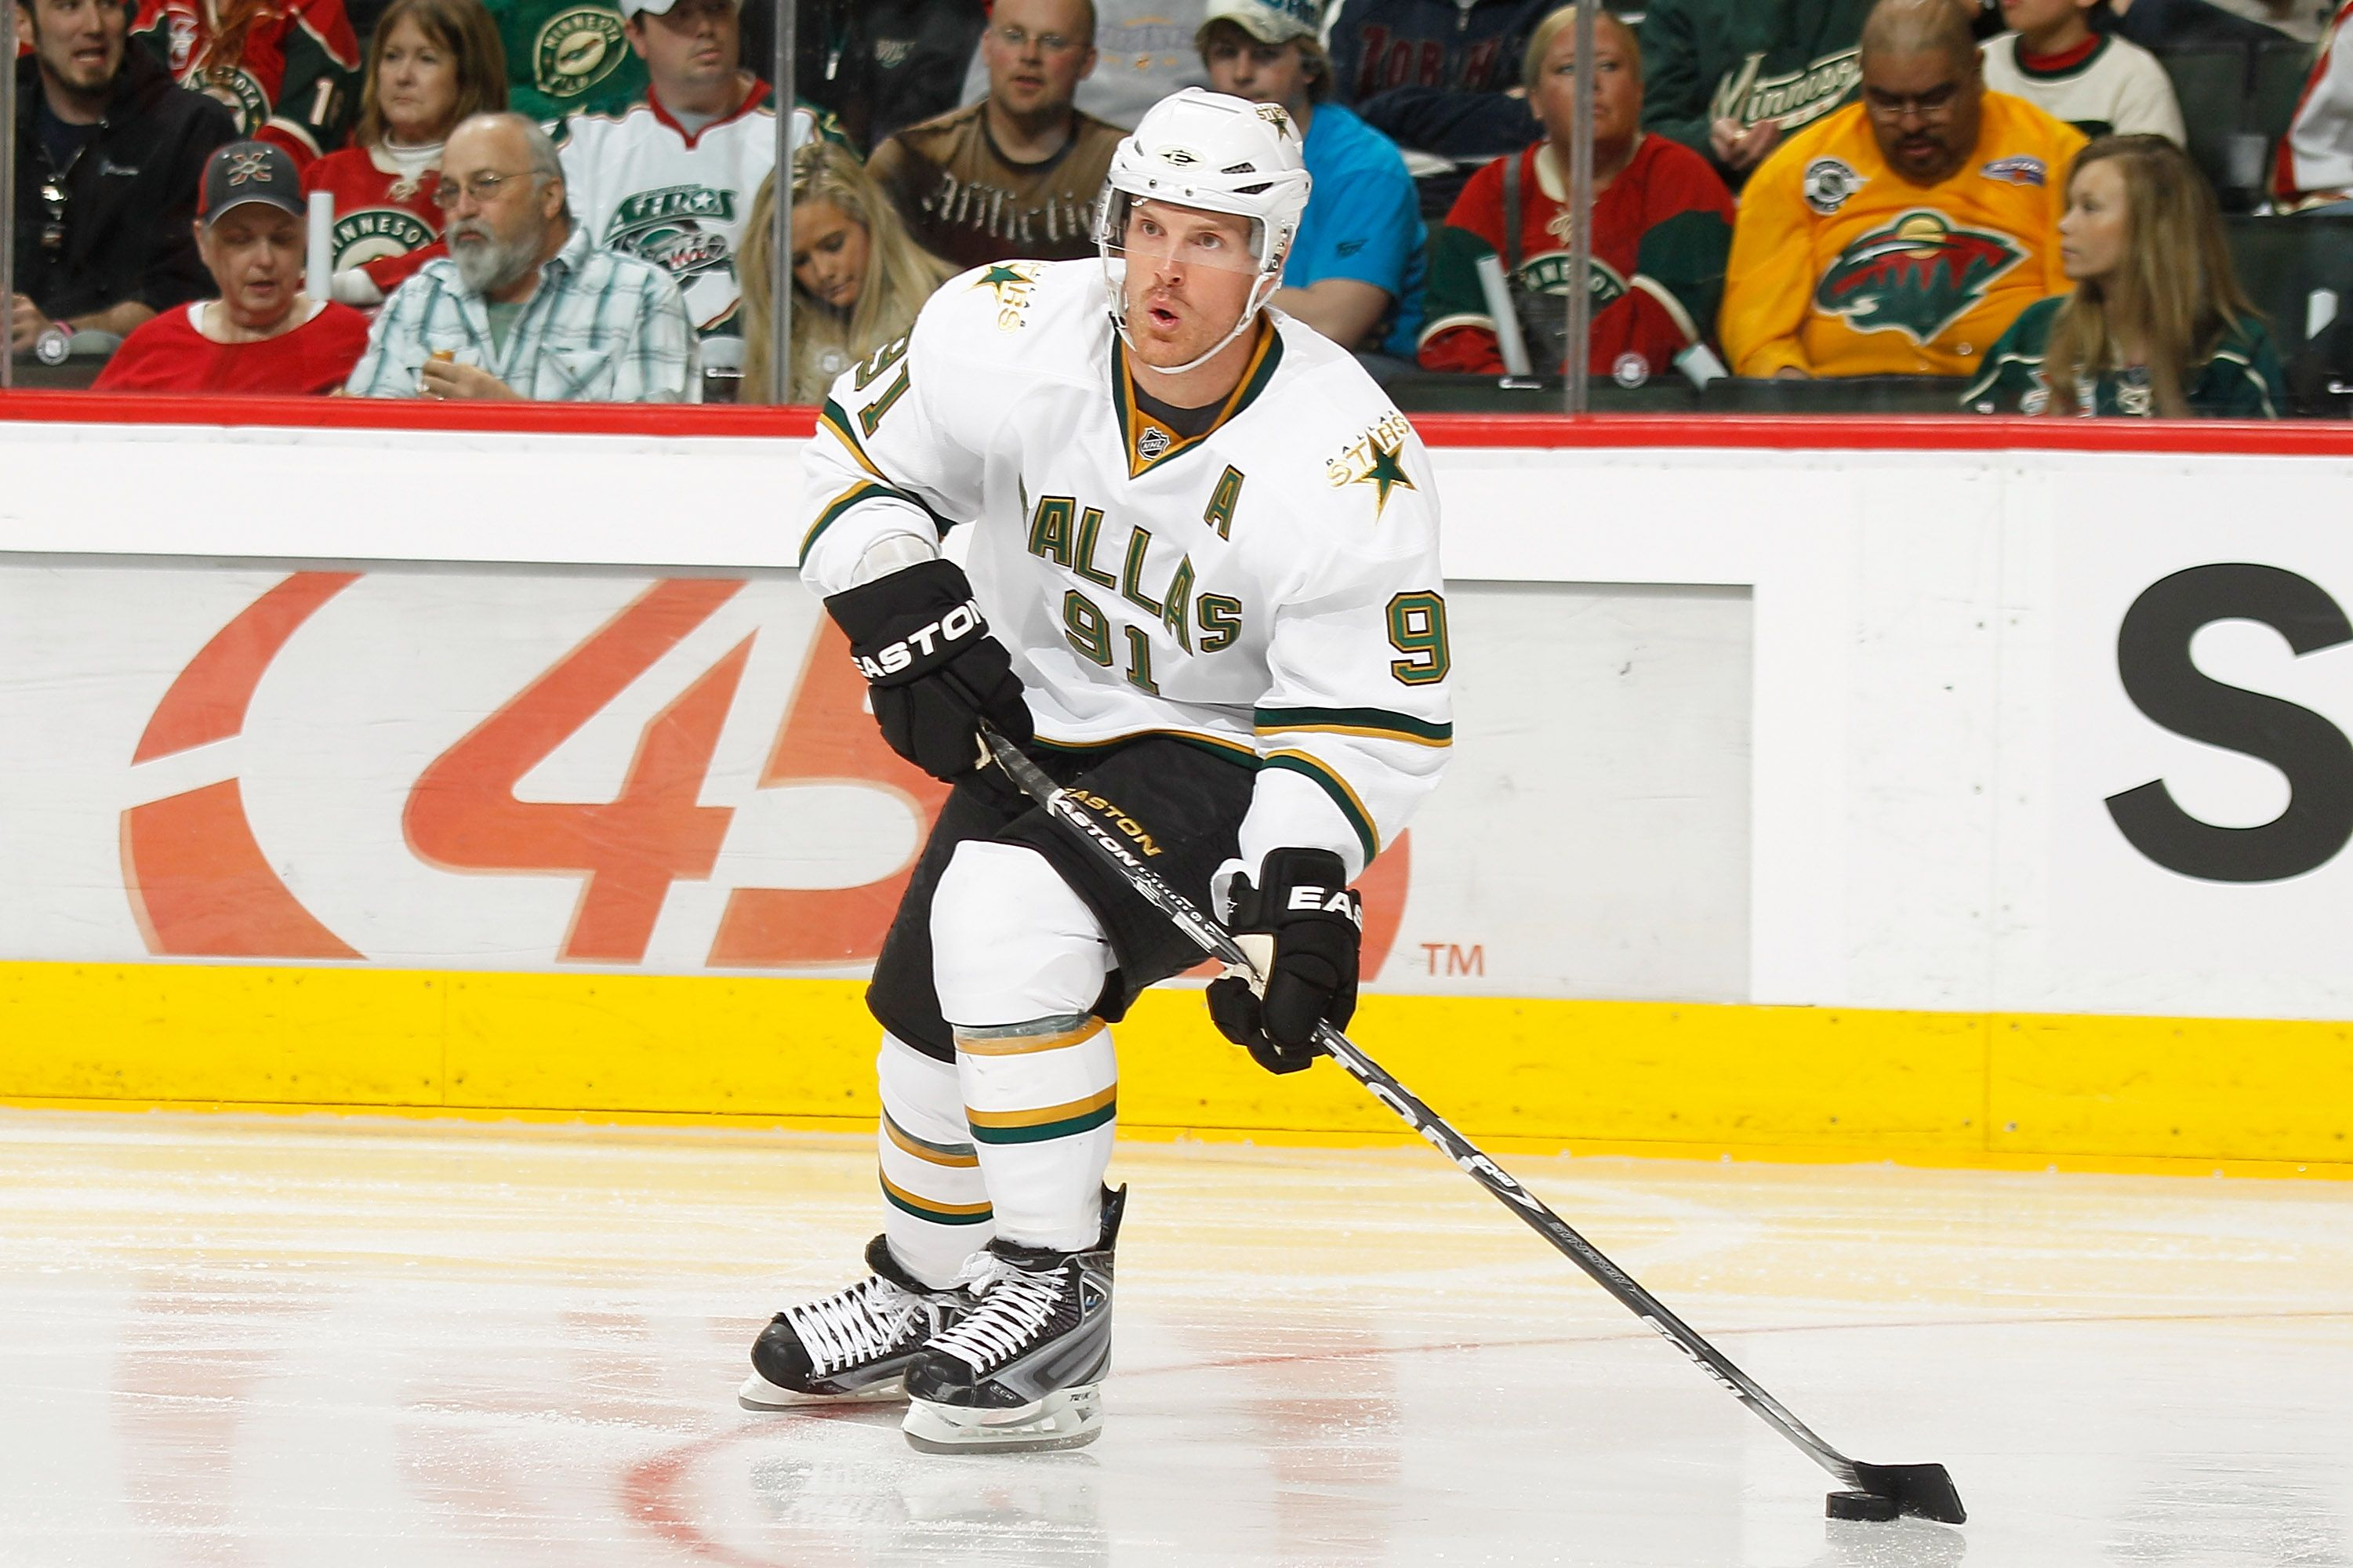 6.Stars receive Brad Richards and Johan Holmqvist from Lightning for Mike Smith, Jussi Jokinen, Jeff Halpern and a fourth-round draft pick